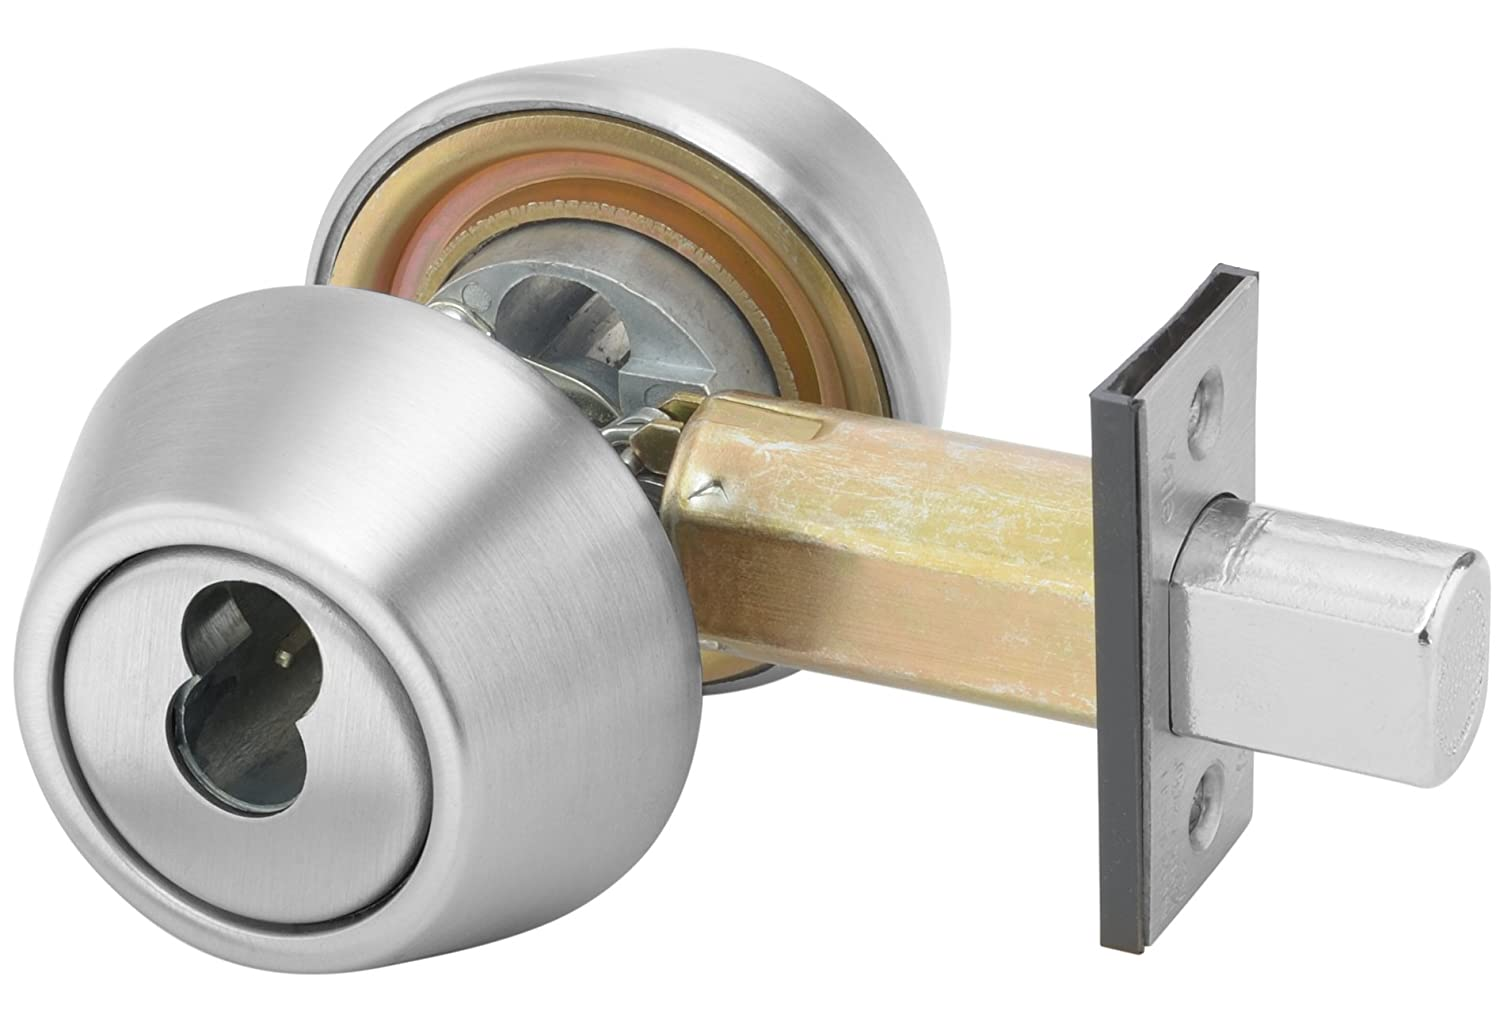 Classroom Function 626 Satin Chrome Finish 2 3//4 Backset ASSA ABLOY 086069 2 3//4 Backset Yale B-D262 626 D243 SFICLC 200 Series Deadbolt SFIC Cylinder Prep Less Cylinder Cylinder by Cylinder